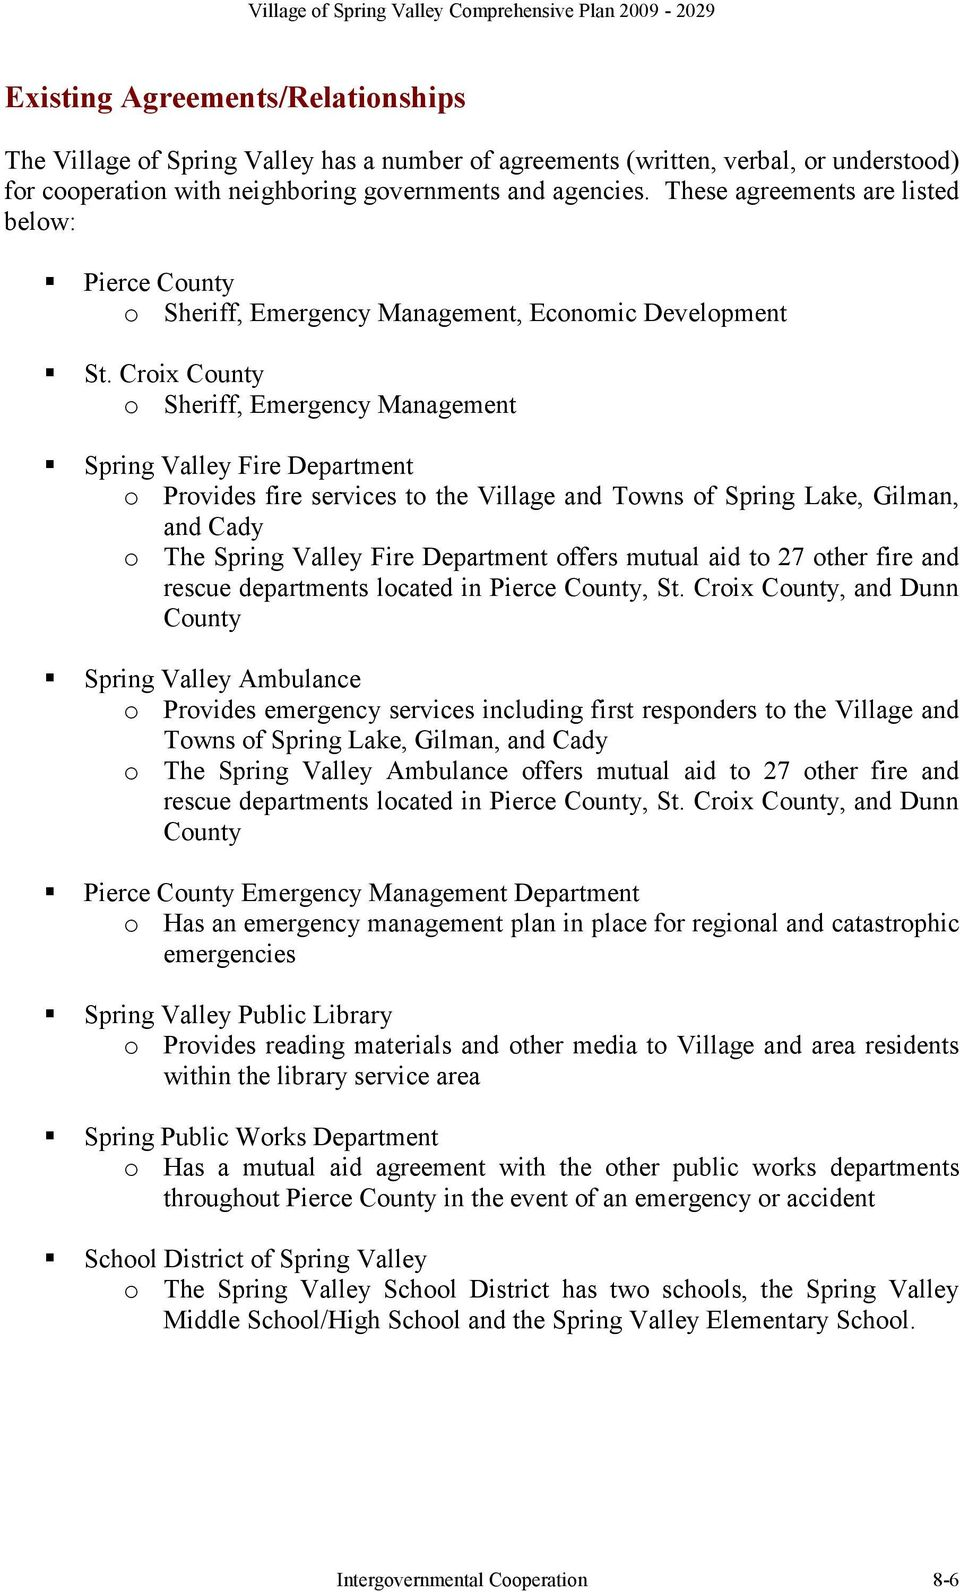 Croix County o Sheriff, Emergency Management Spring Valley Fire Department o Provides fire services to the Village and Towns of Spring Lake, Gilman, and Cady o The Spring Valley Fire Department